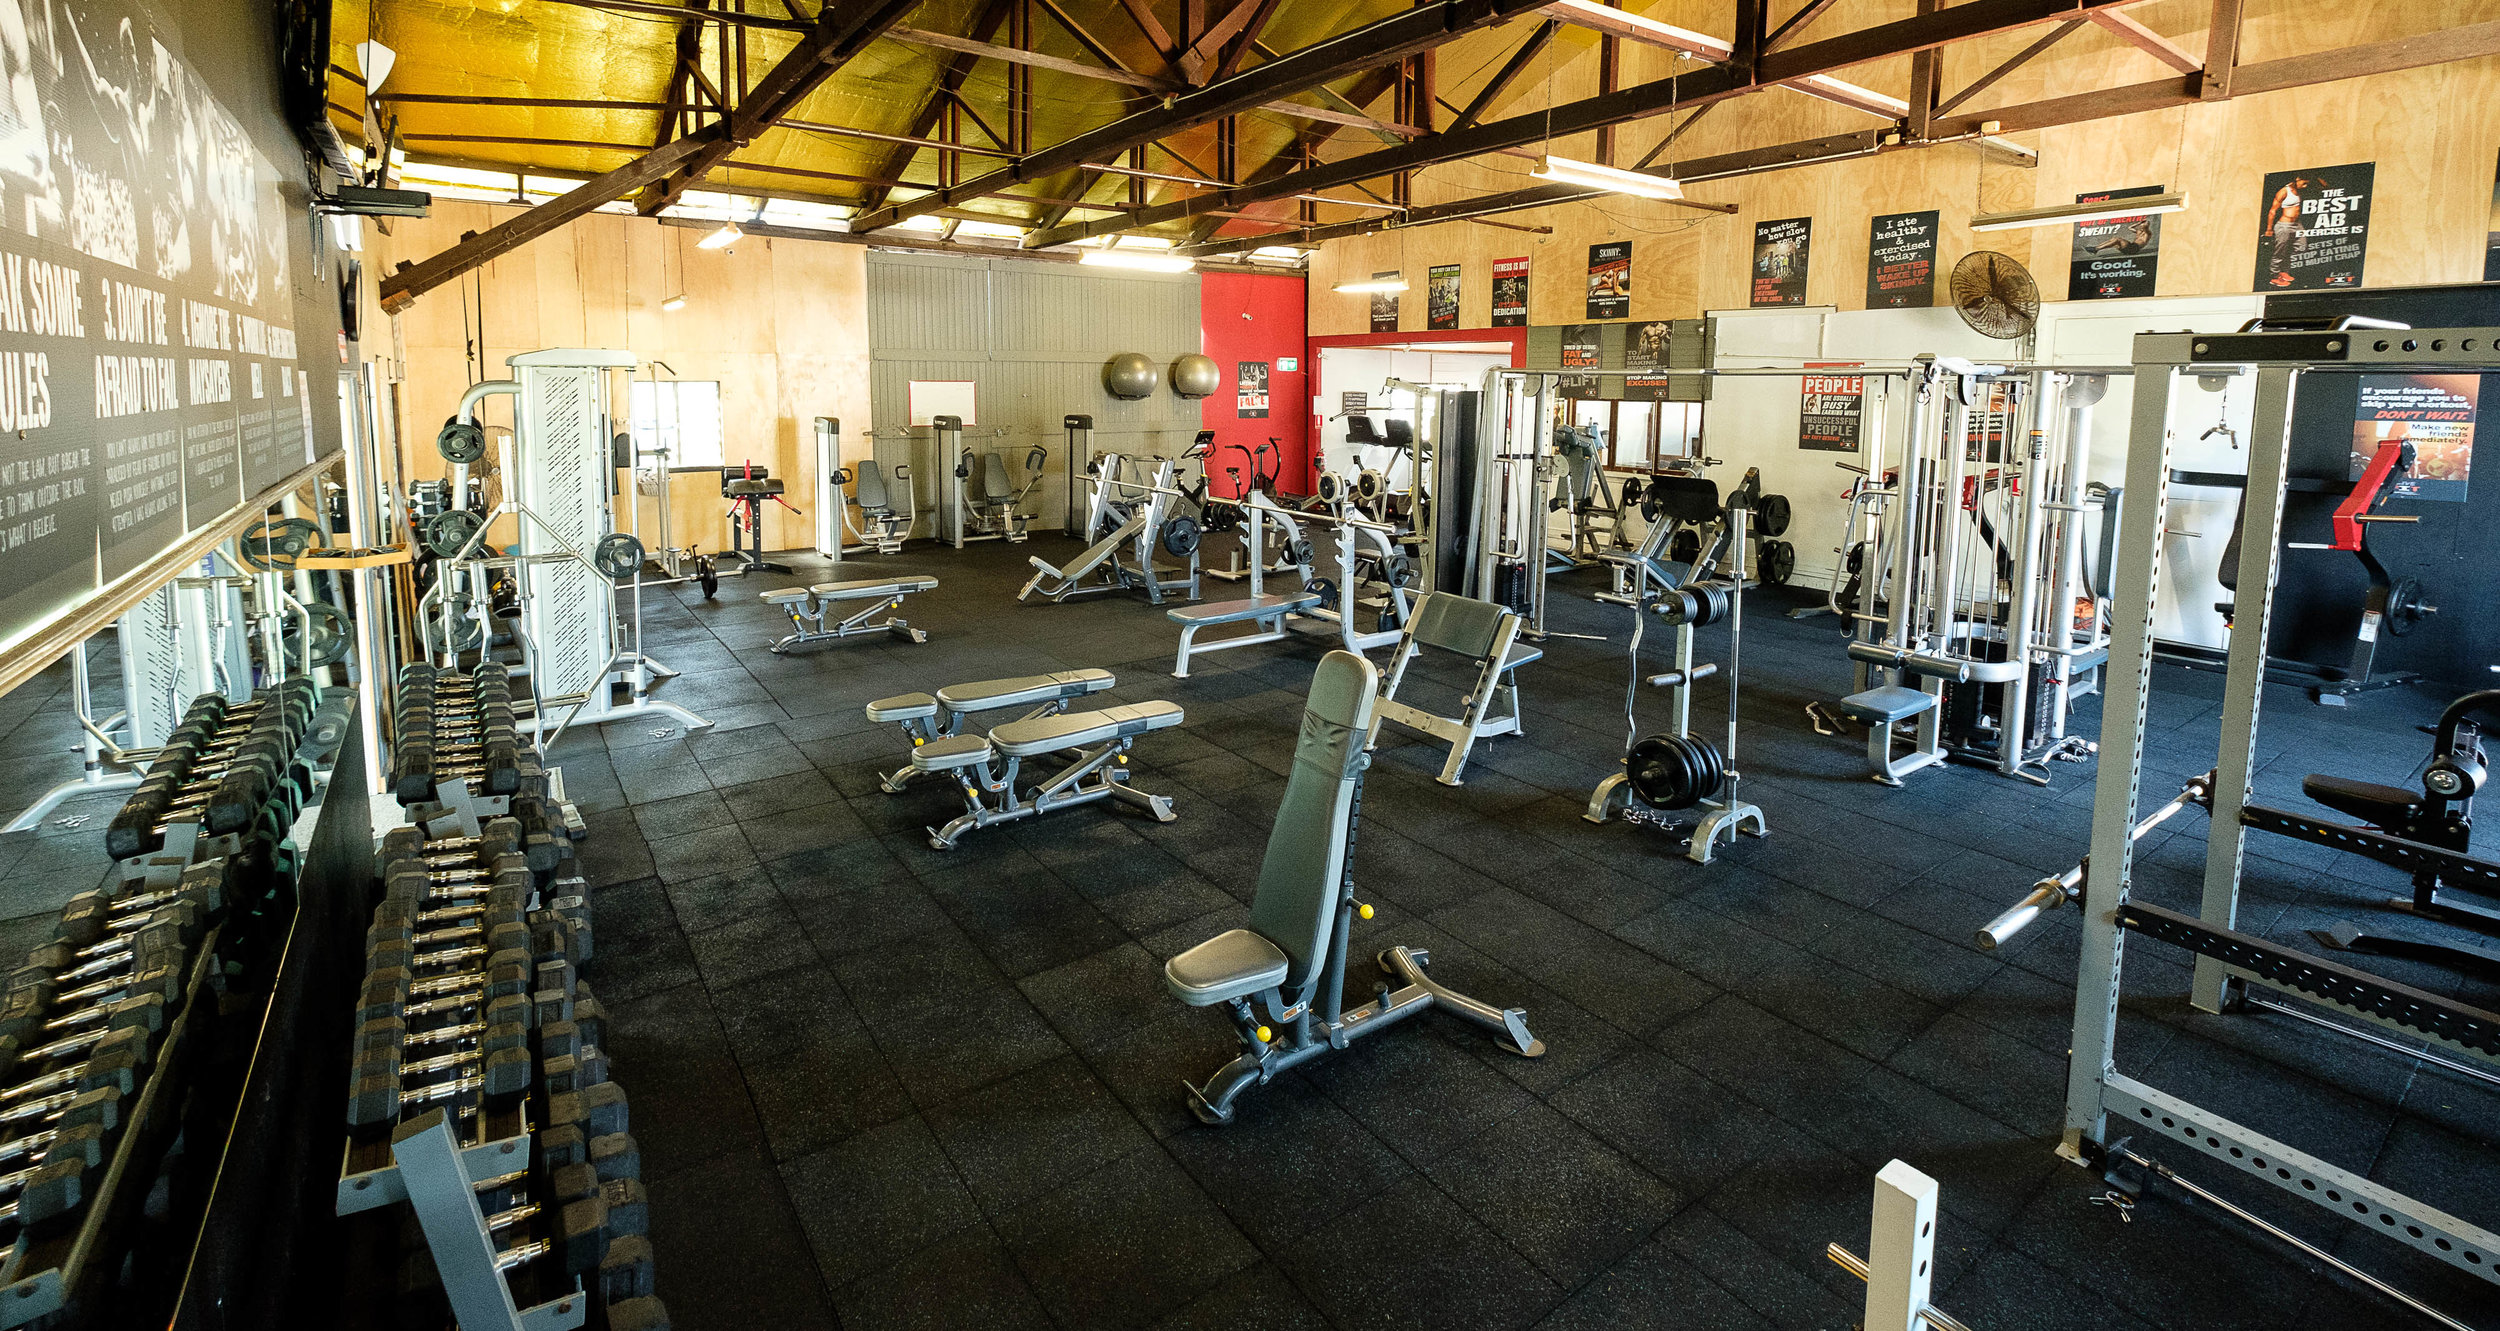 Live Fit - the gym.jpg